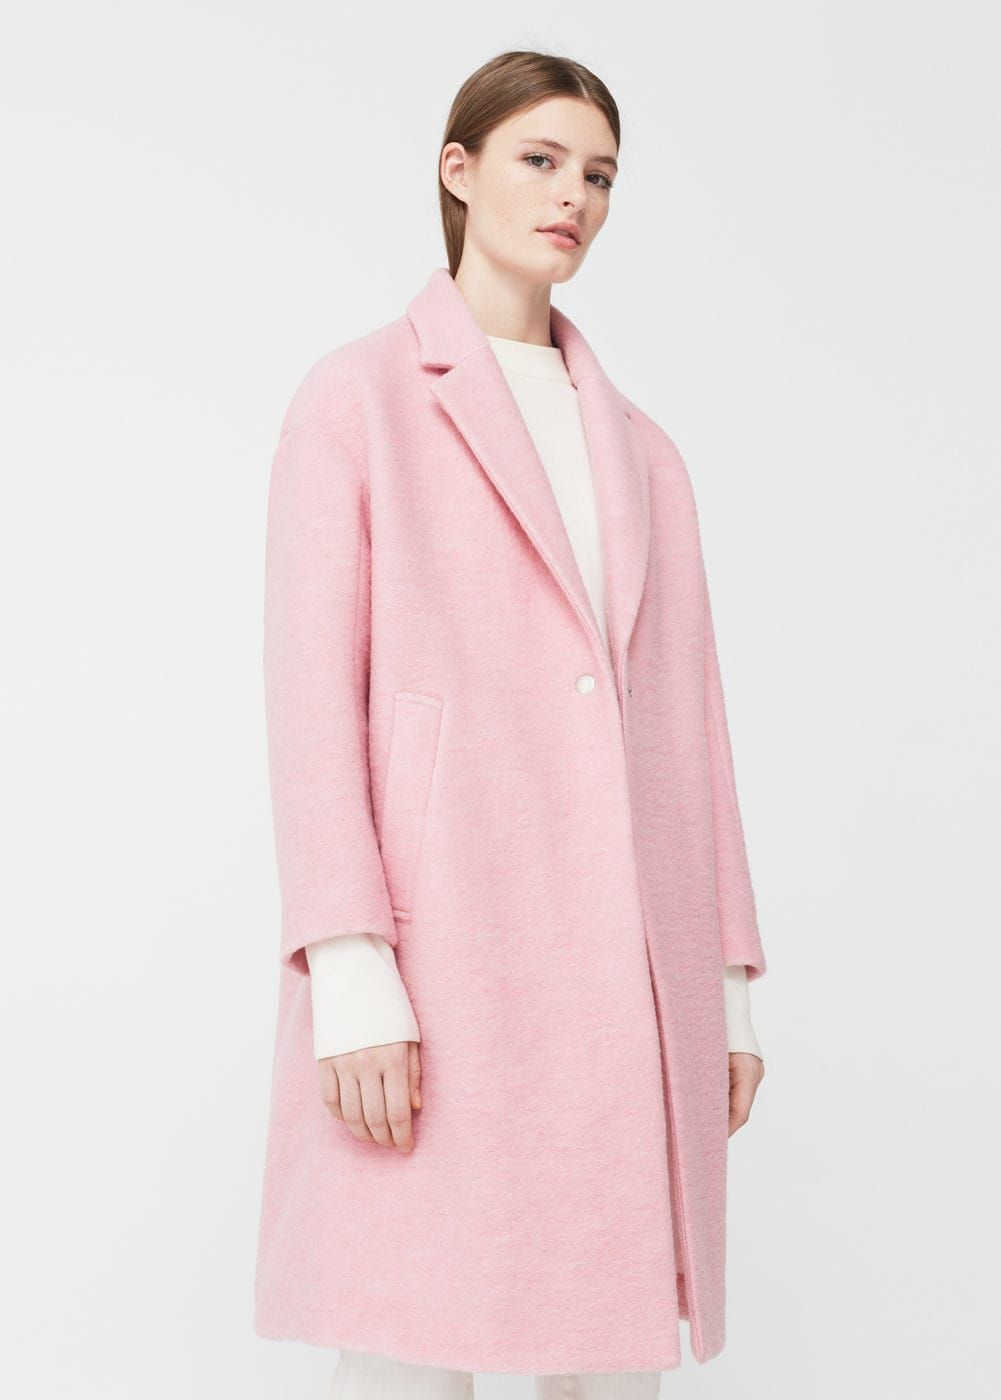 Super Unstructured wool coat - Women | Wool coats, Ss 17 and Woman MH45